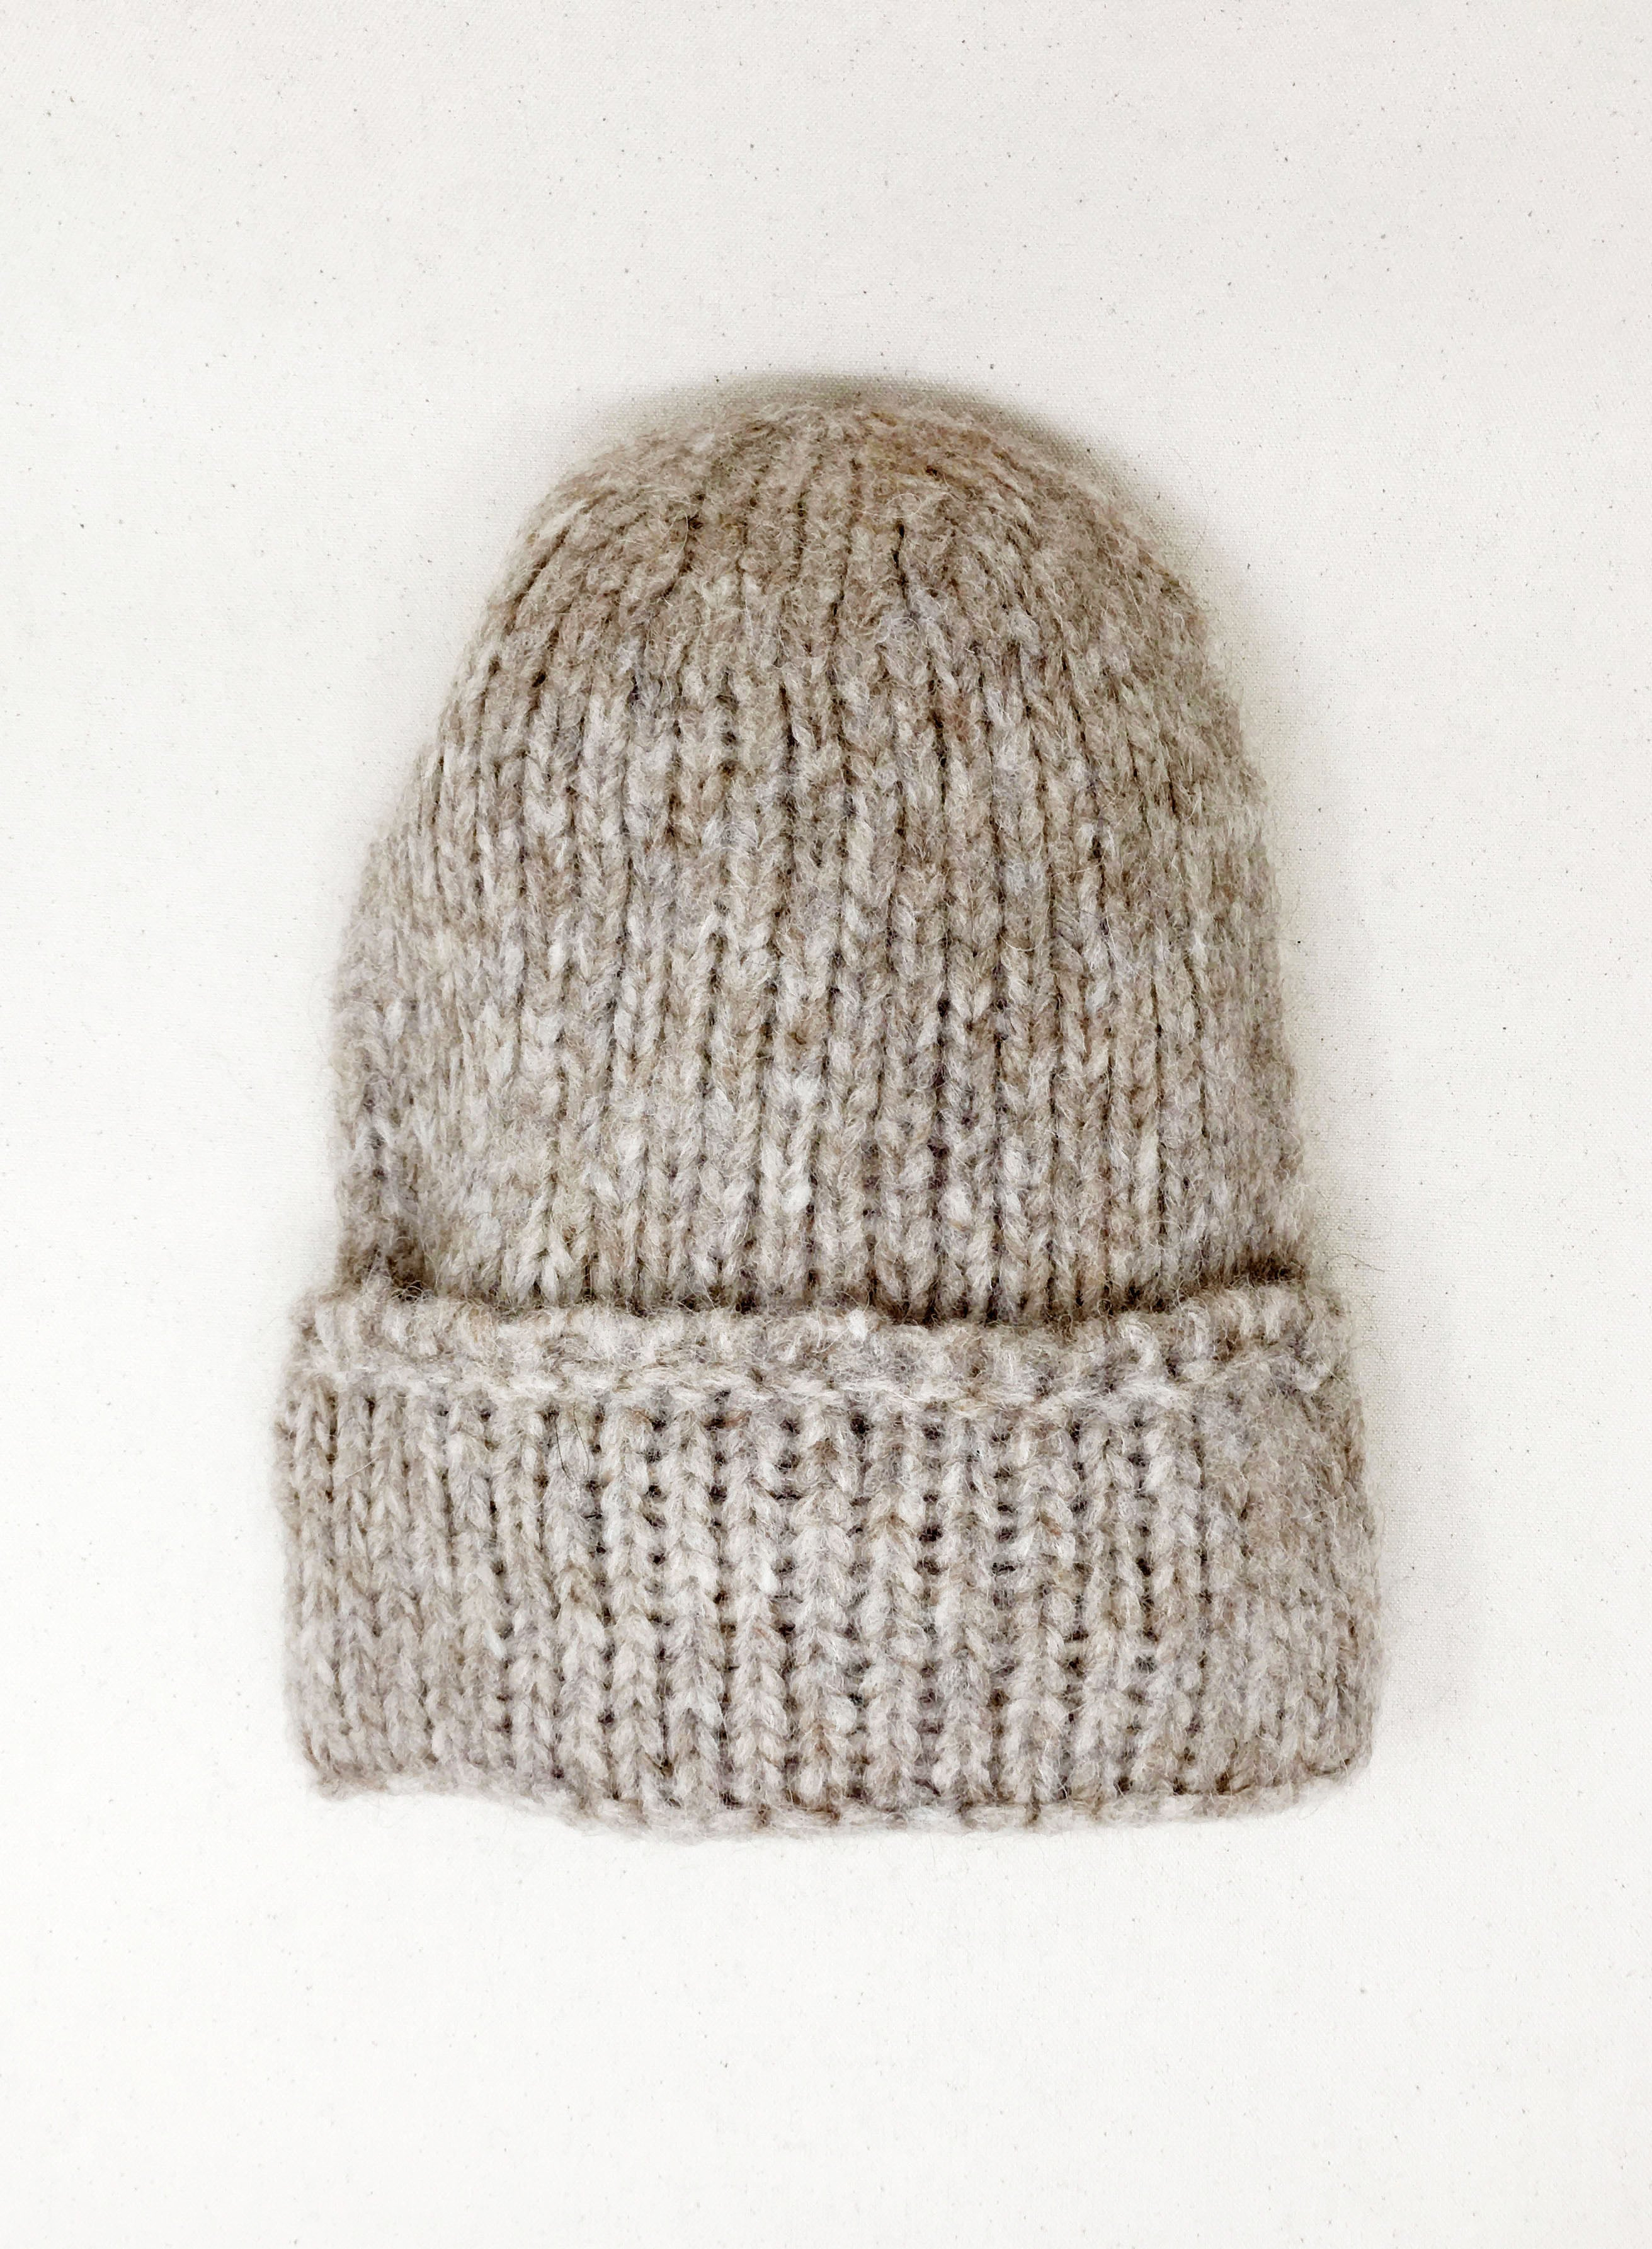 Superba Beanie in Toasted Oat